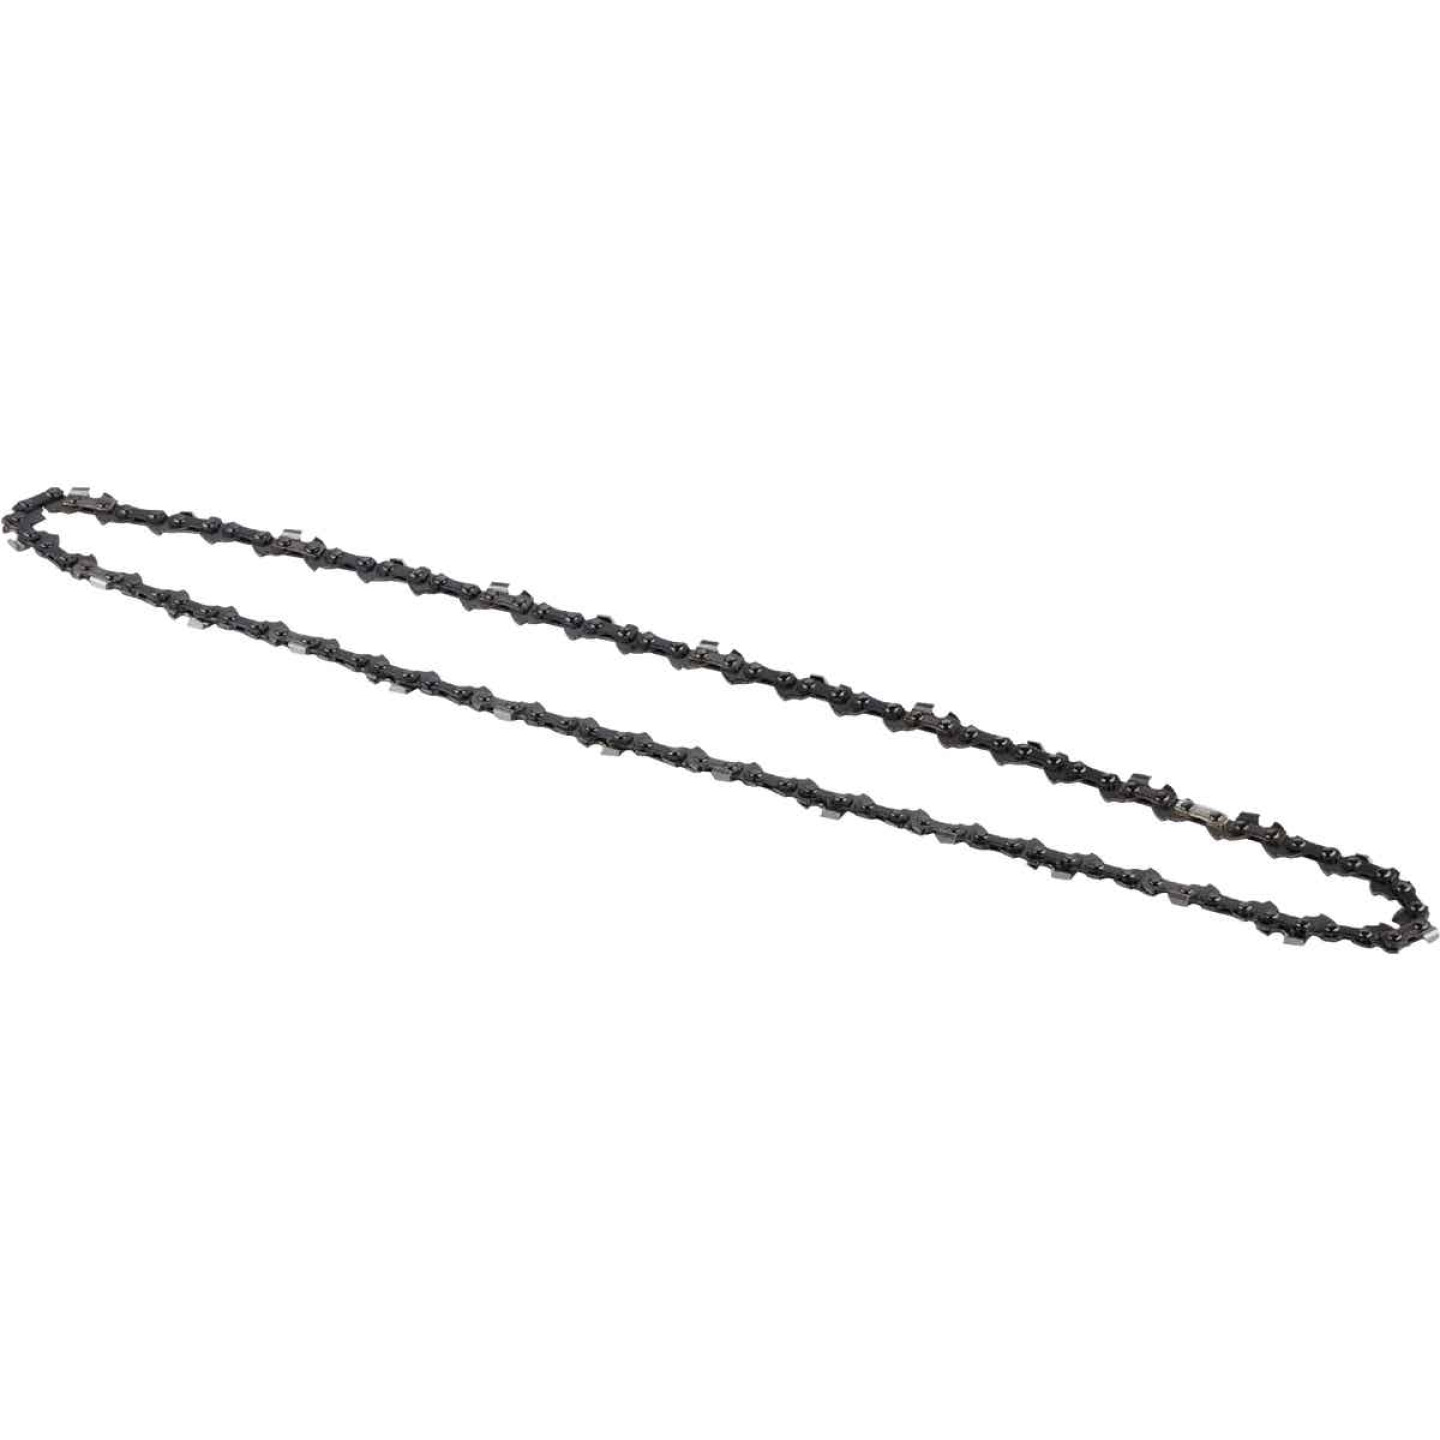 Oregon AdvanceCut S54 16 In. Chainsaw Chain Image 4